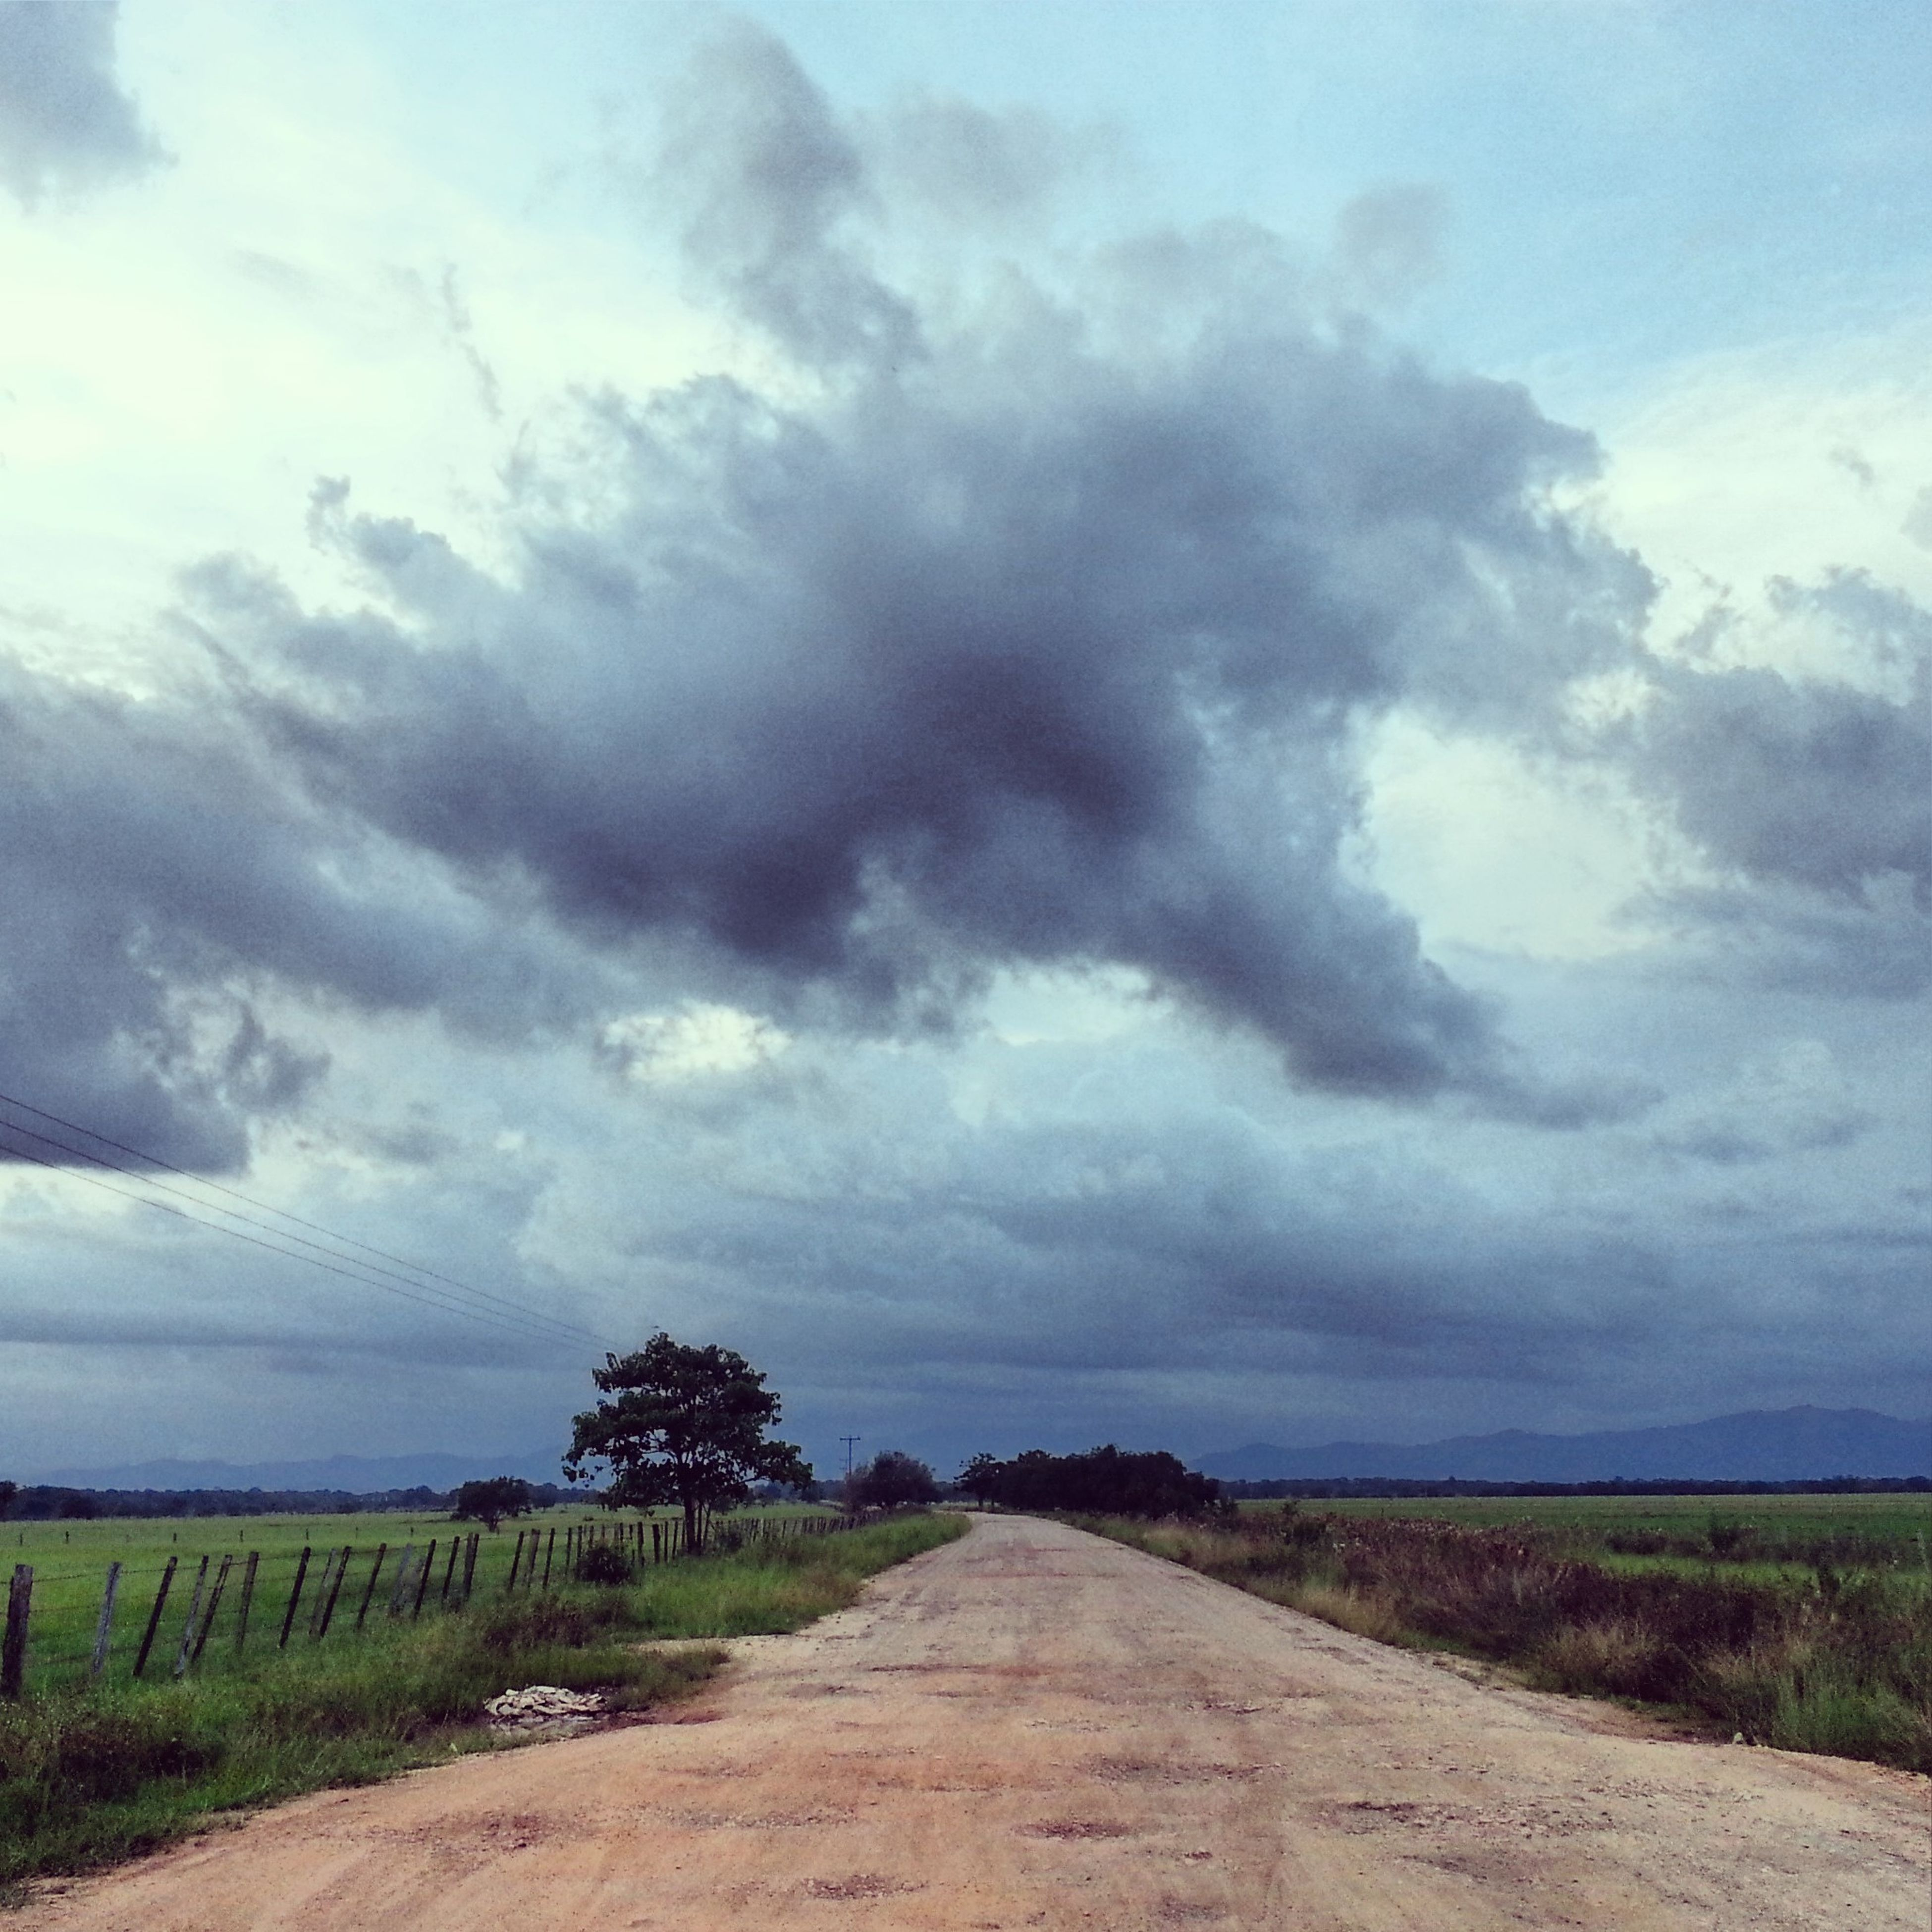 sky, cloud - sky, cloudy, tranquil scene, landscape, tranquility, the way forward, field, scenics, cloud, nature, beauty in nature, road, rural scene, dirt road, overcast, weather, grass, diminishing perspective, horizon over land